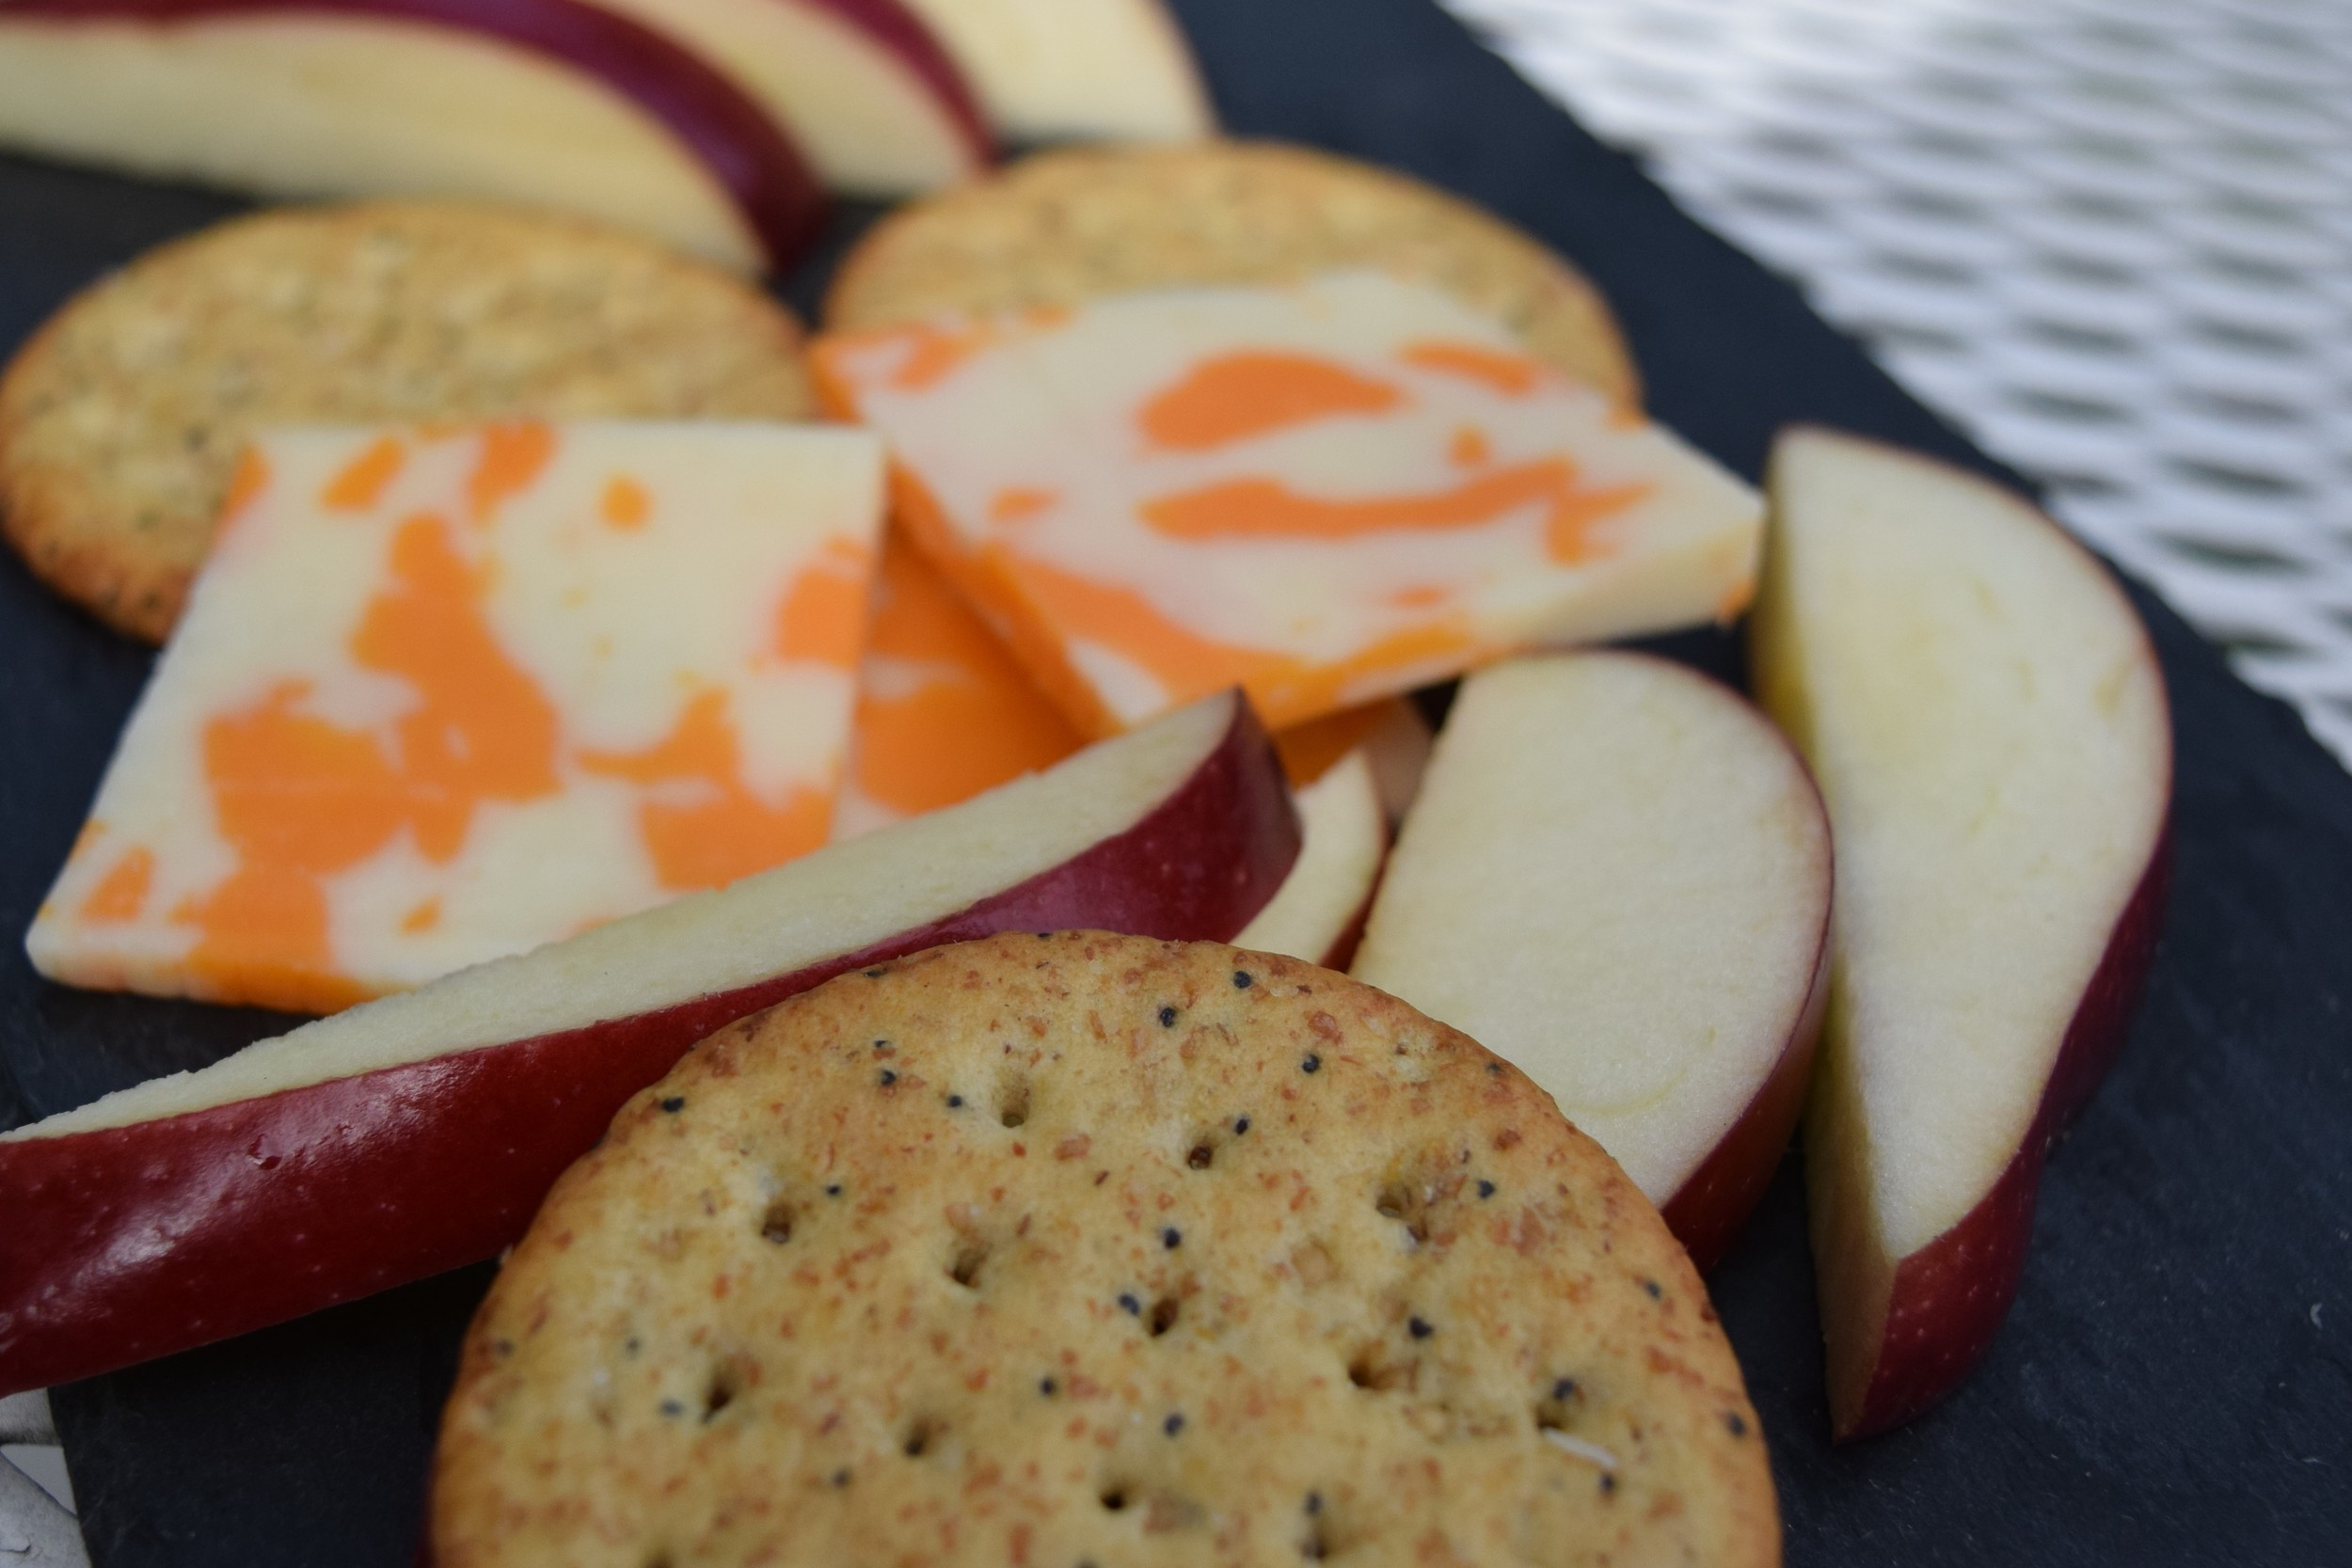 Crackers, cheese and an apple